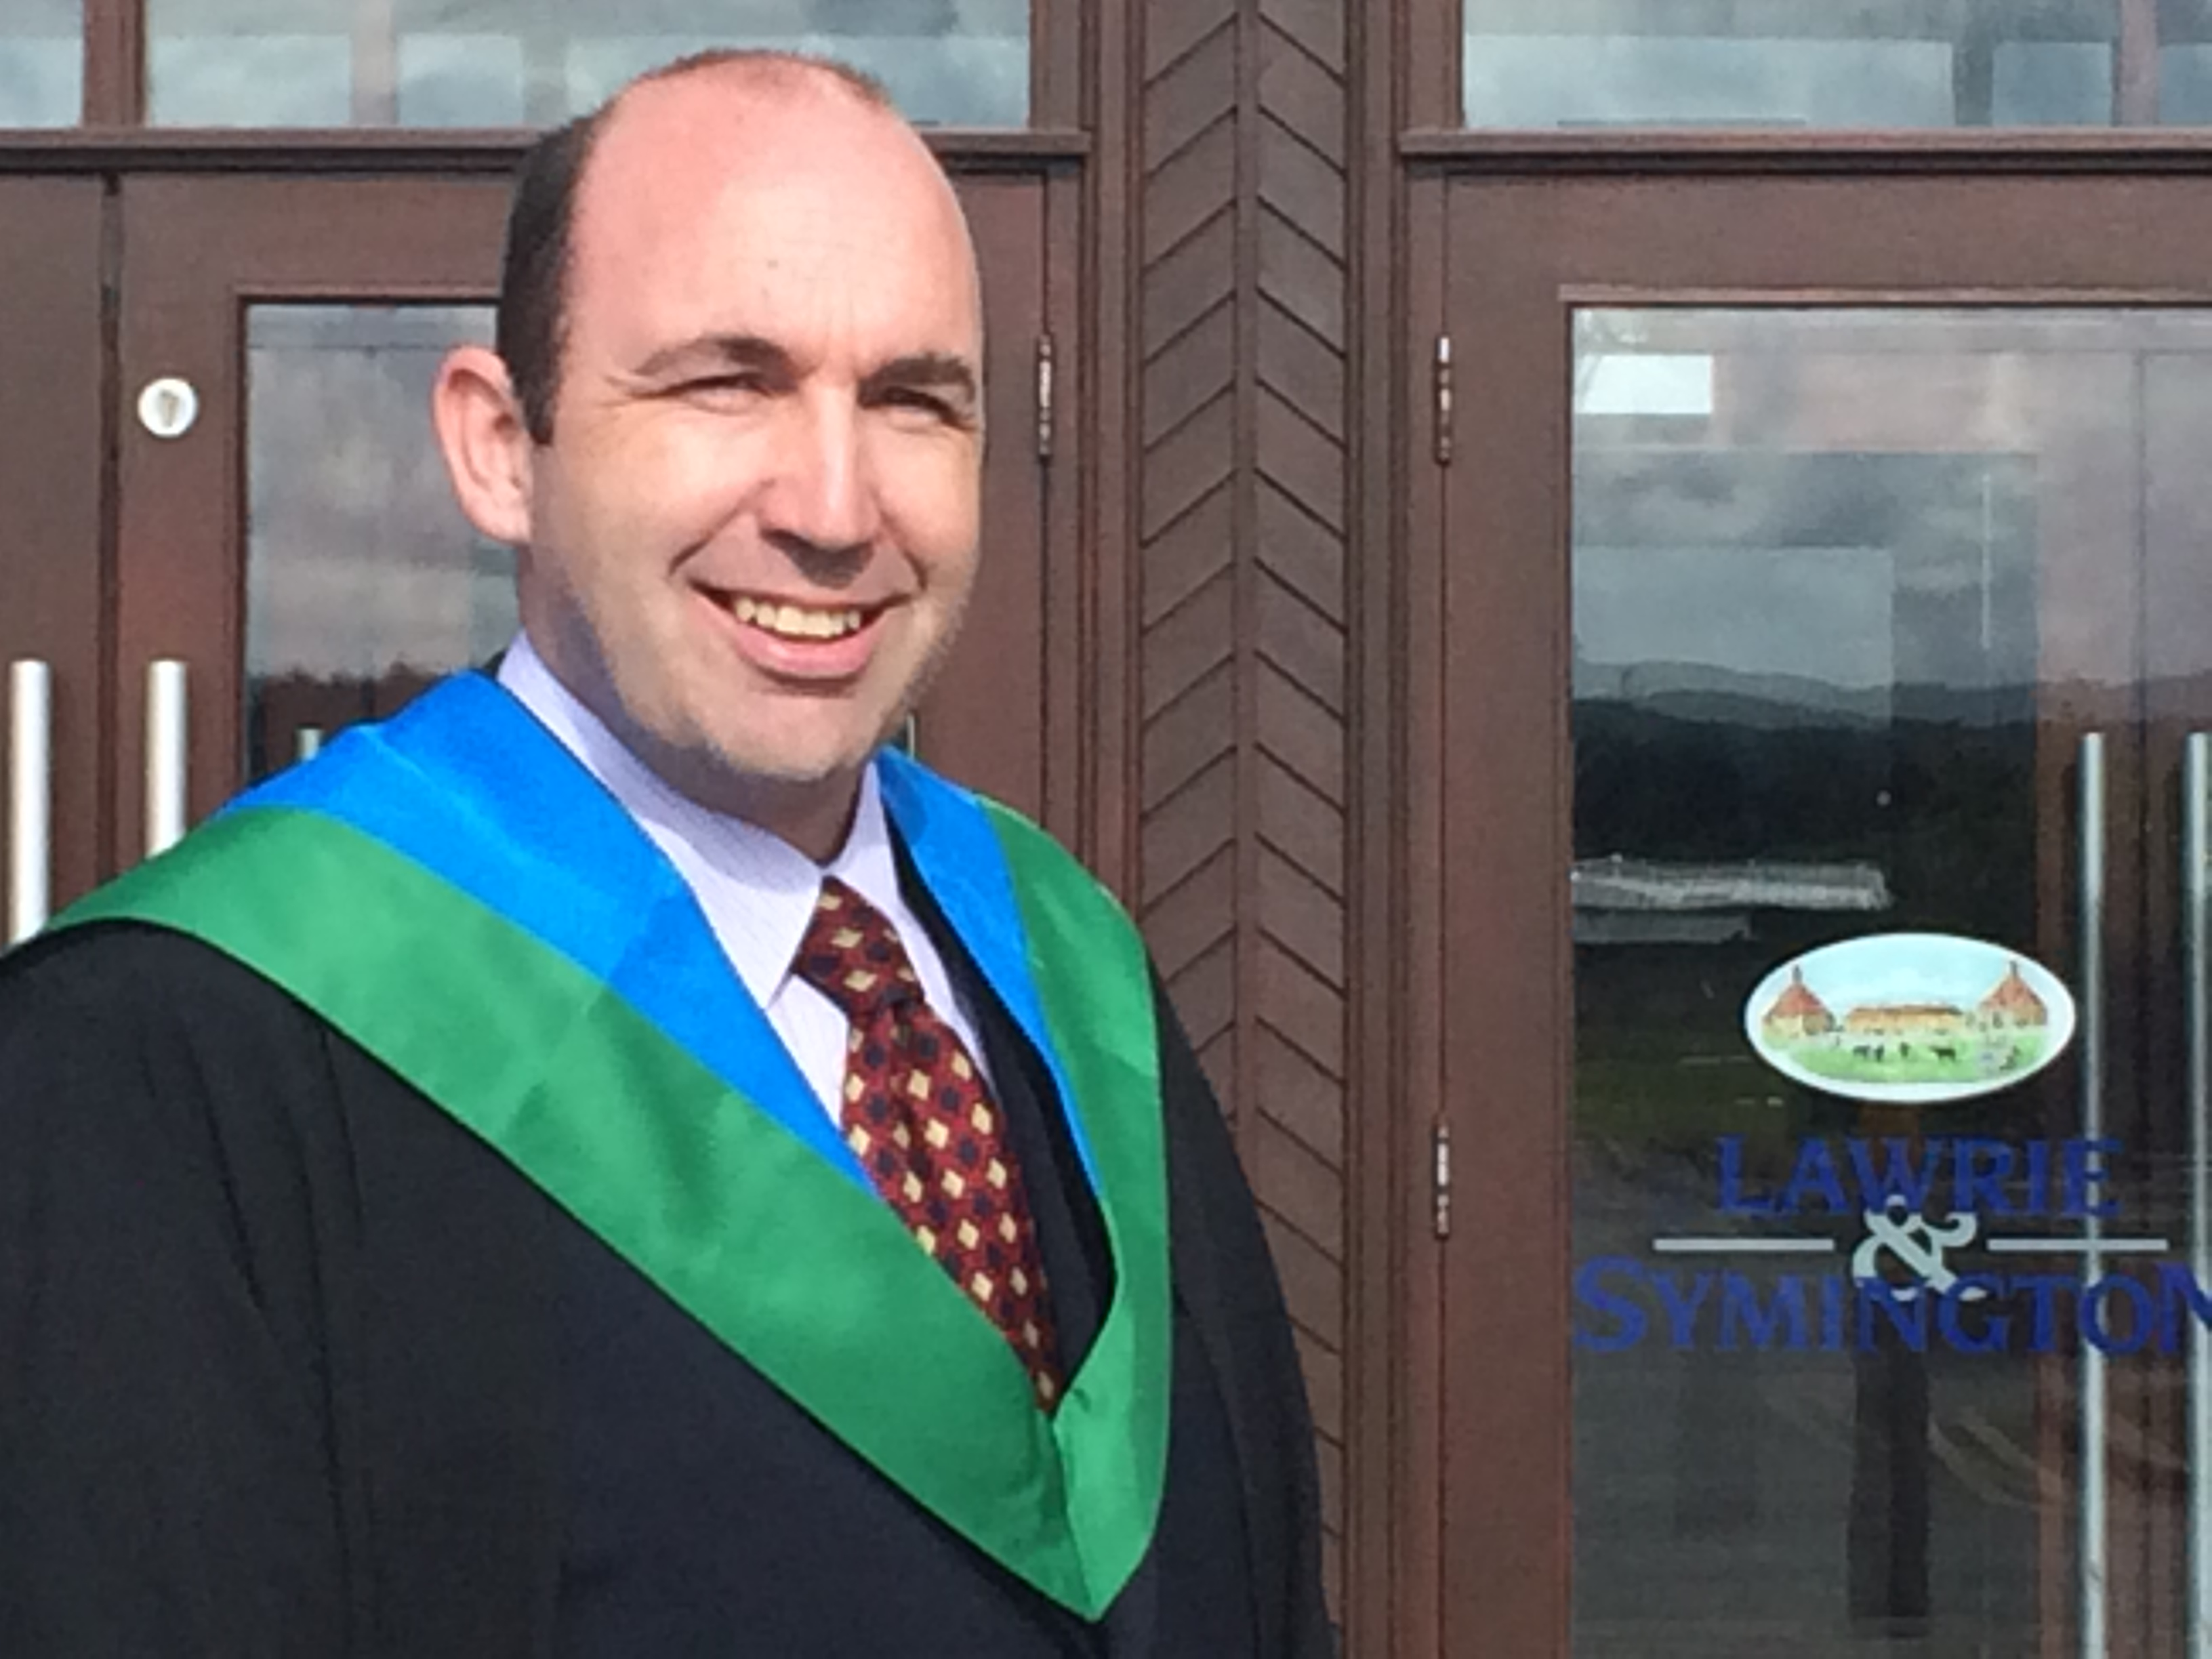 Congratulations to Alistair Muirhead who has graduated with an Honours Degree in Property Management and Valuation from Glasgow Caledonian University after five years of part time study.